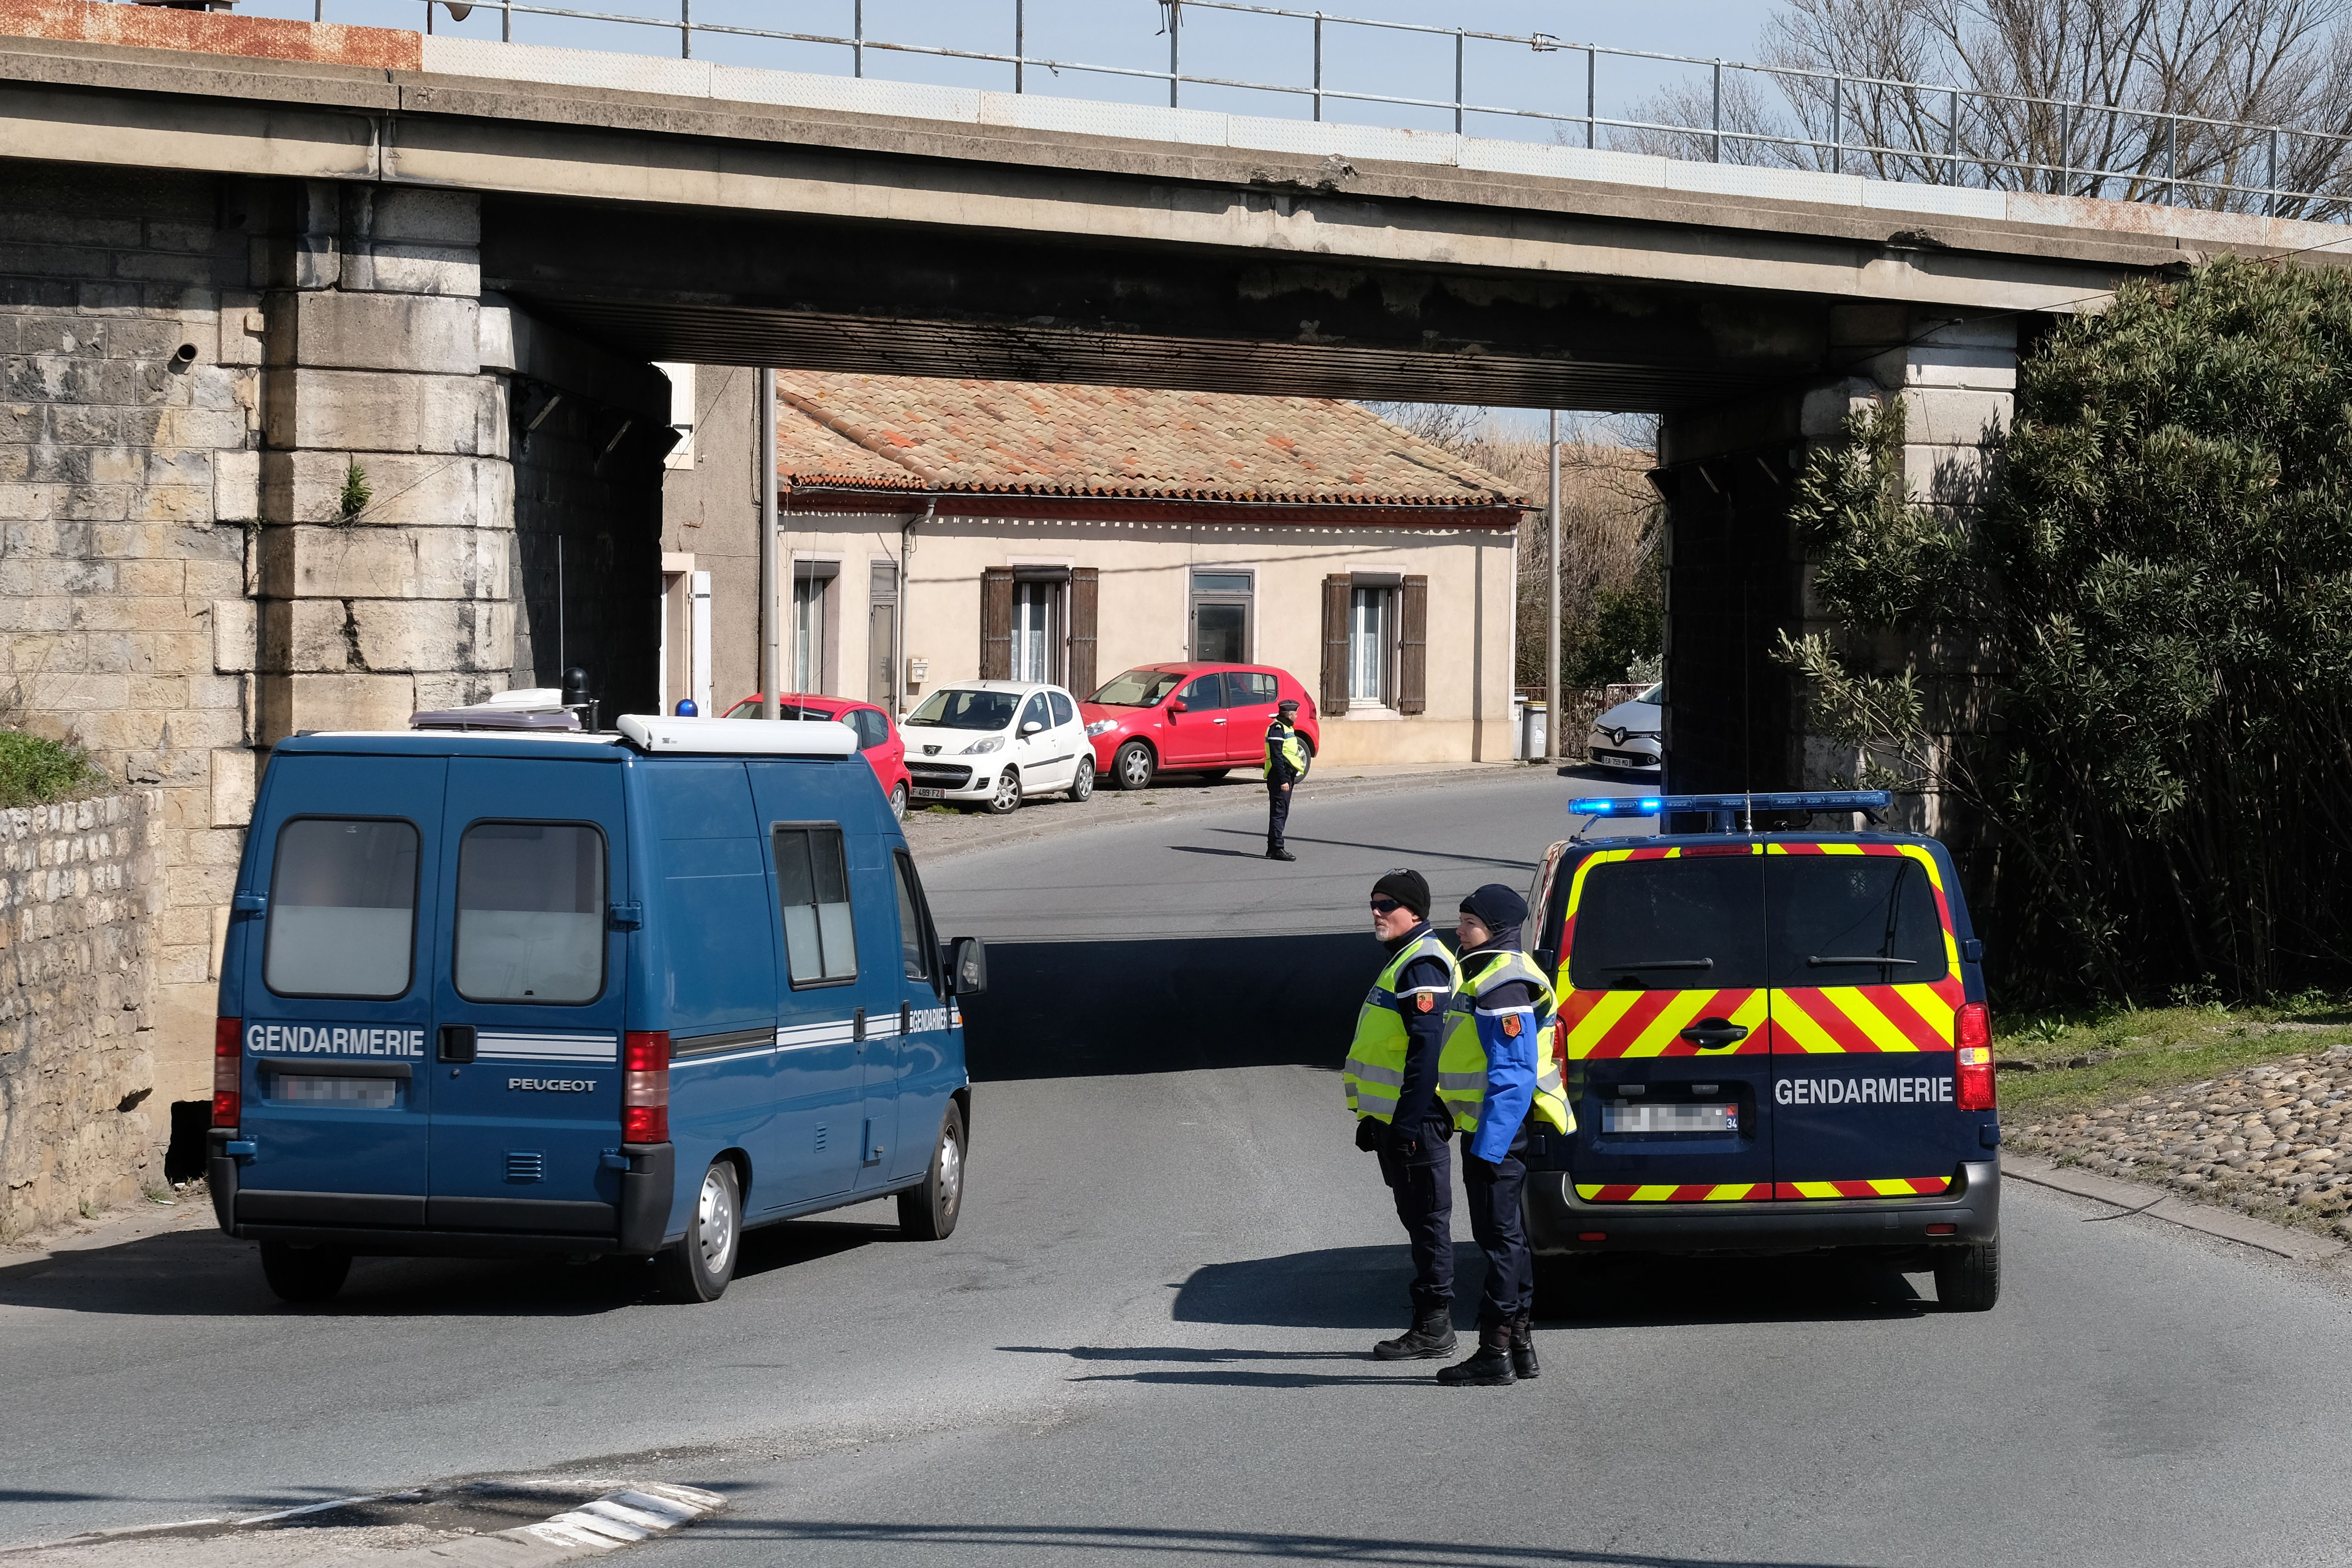 French gendarmes block an access to Trebes, where a man took hostages at a supermarket on March 23, 2018 in Trebes, southwest France. At least two people were killed after a gunman claiming allegiance to the Islamic State group opened fire and took hostages at a supermarket in southwest France. / AFP PHOTO / ERIC CABANIS